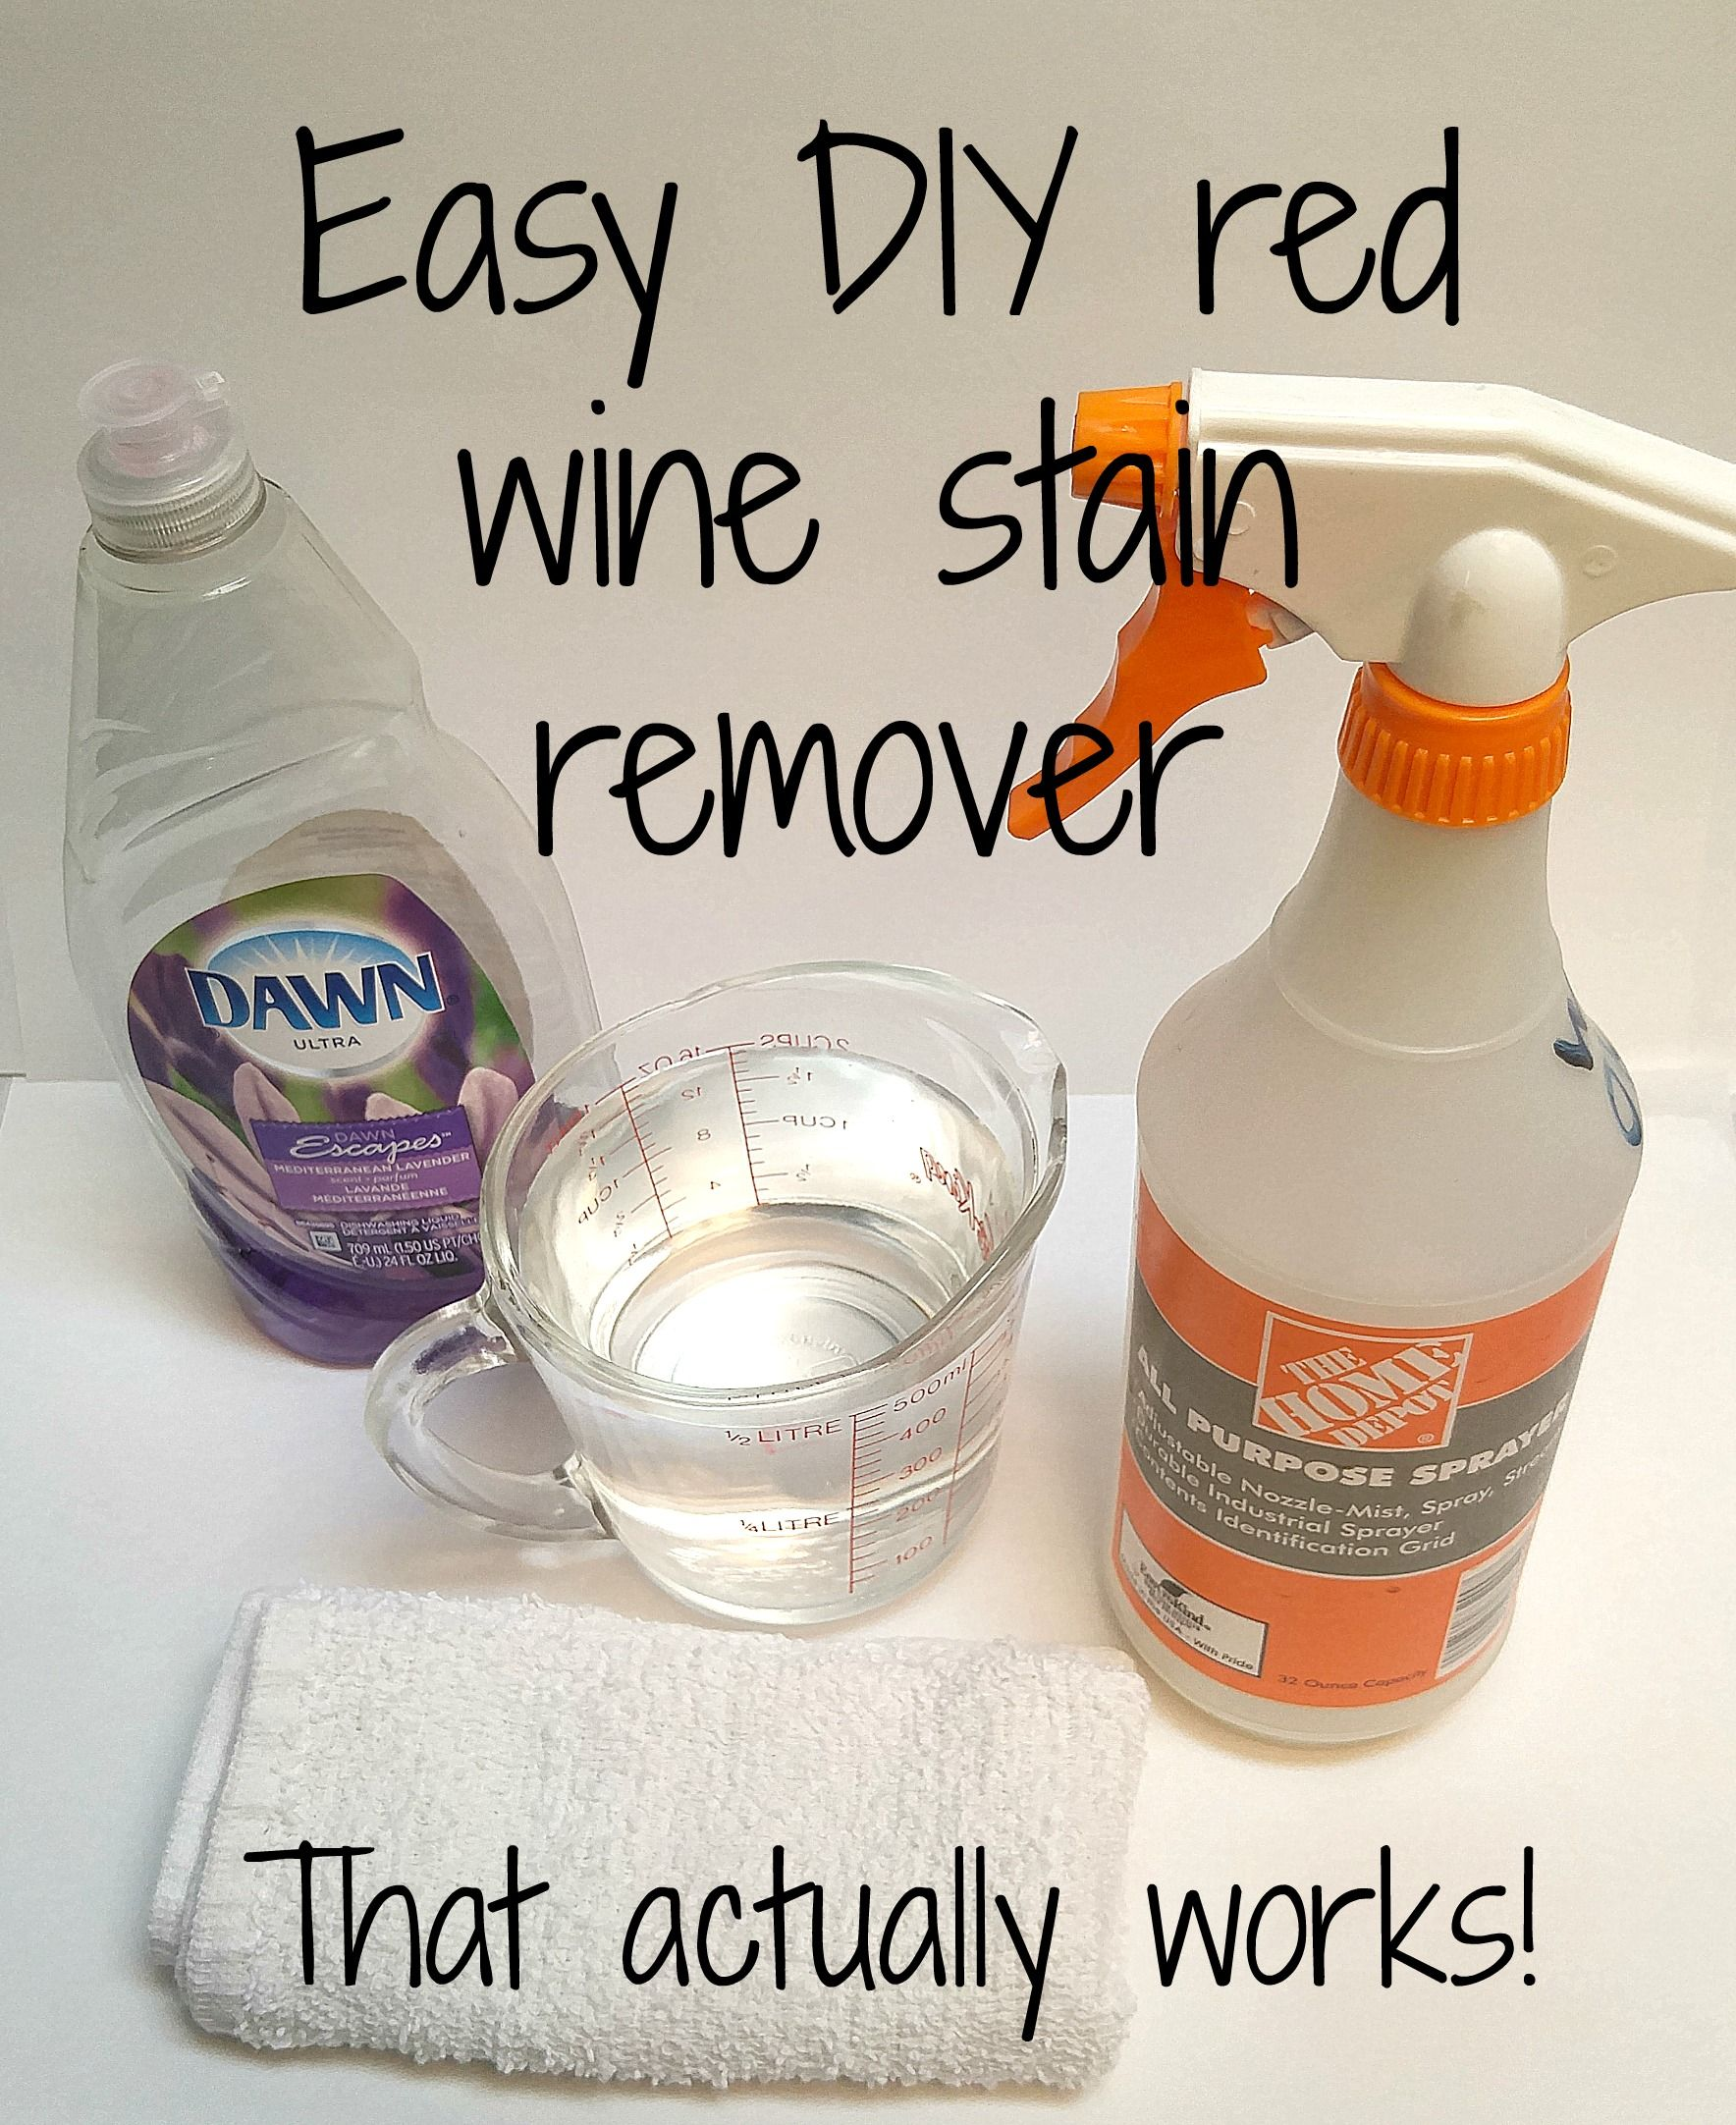 An Easy Diy Red Wine Stain Remover That Actually Works All You Need Is Dawn Dish Soap Water White To Spot Cleaning Carpet Red Wine Stains Wine Stain Remover